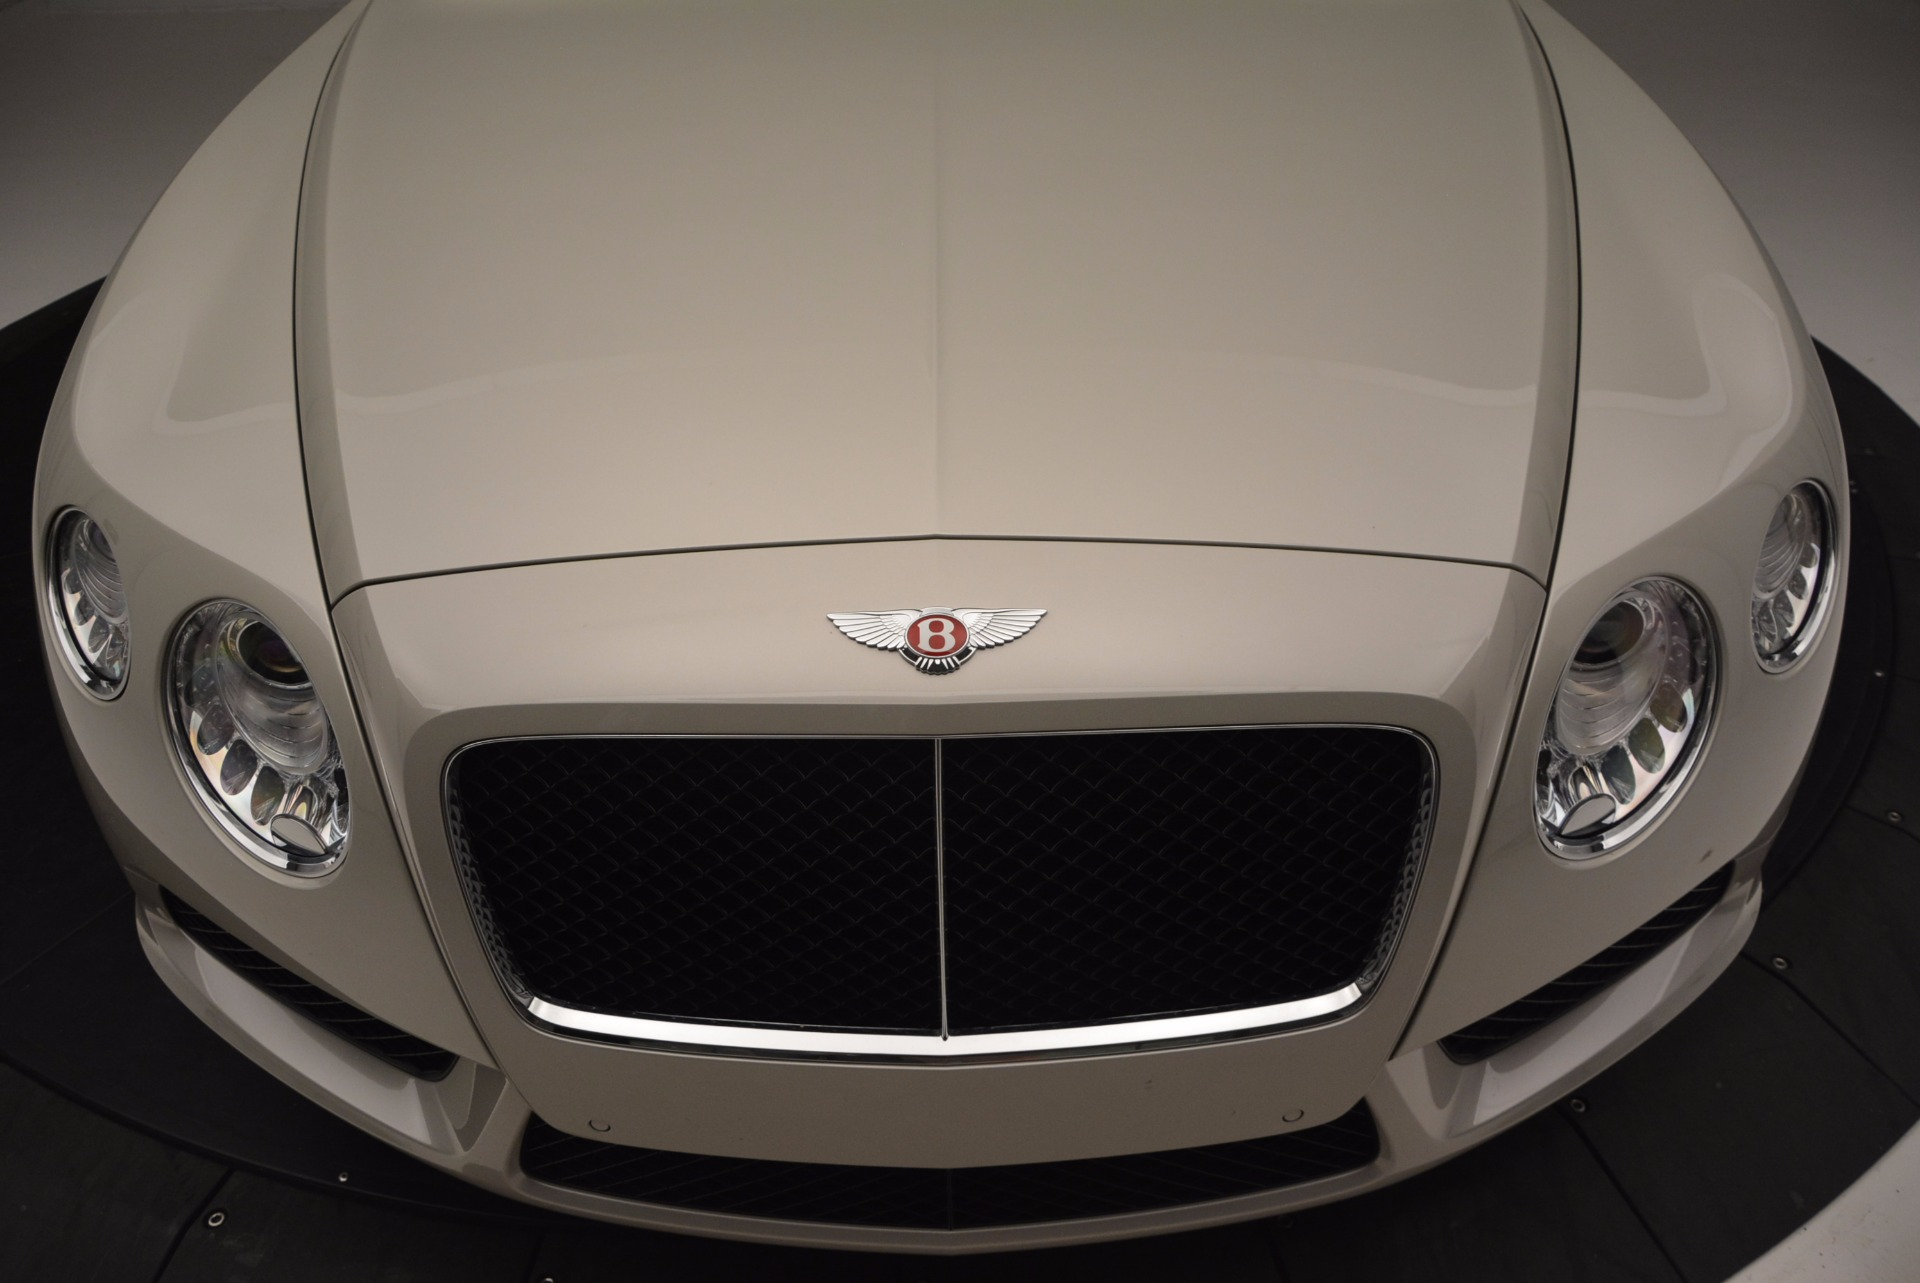 Used 2013 Bentley Continental GTC V8  For Sale In Greenwich, CT. Alfa Romeo of Greenwich, 7108 675_p25